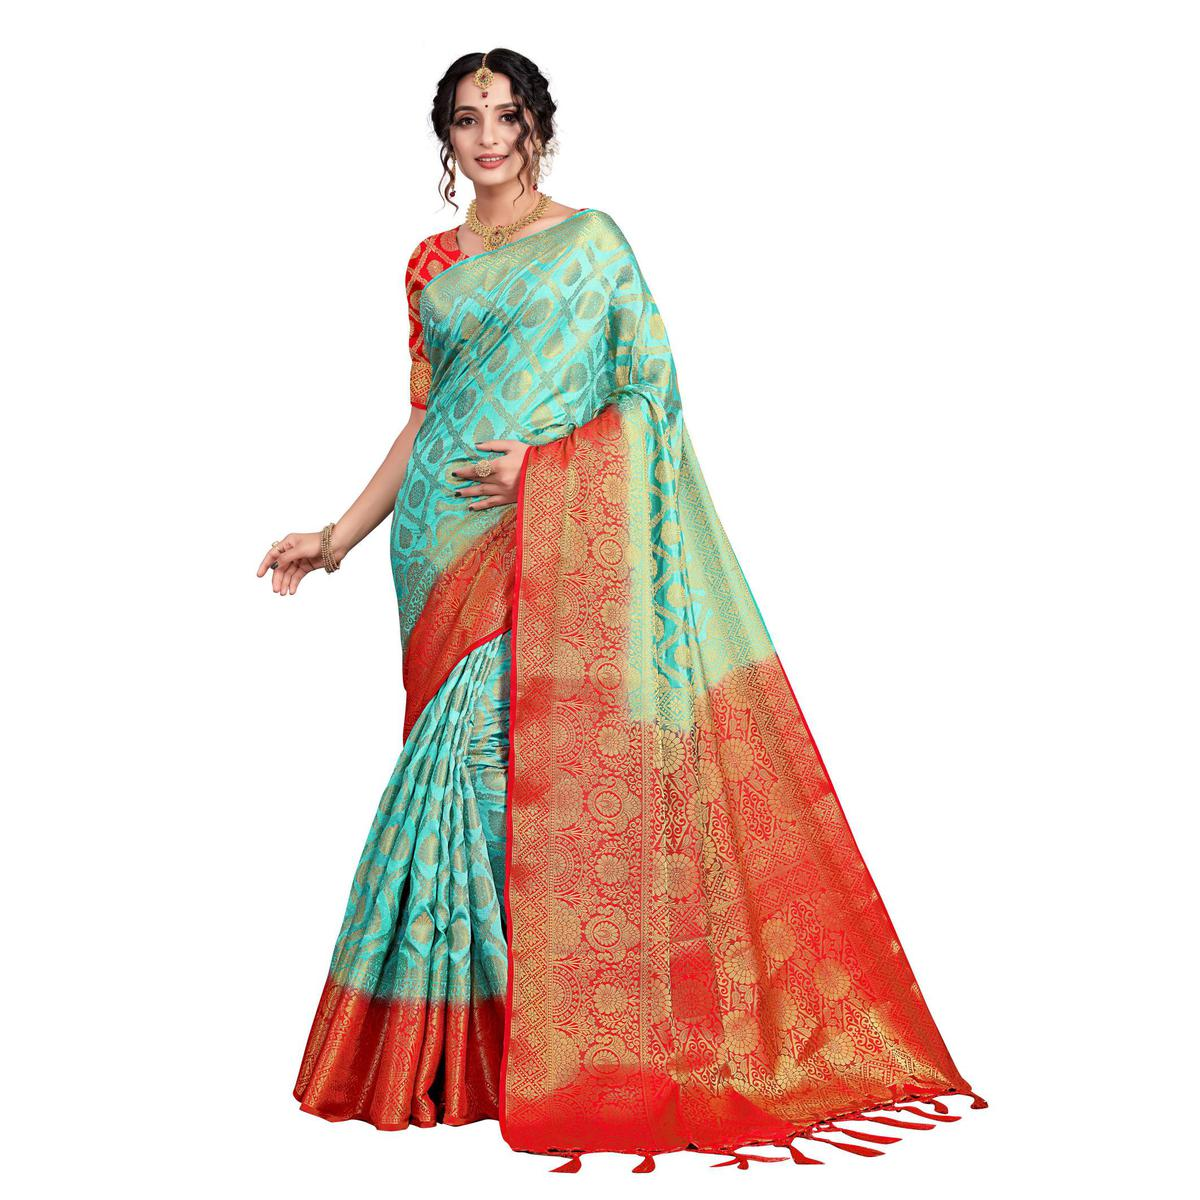 SLE - Turquoise Jacquard Woven Design Saree With Blouse